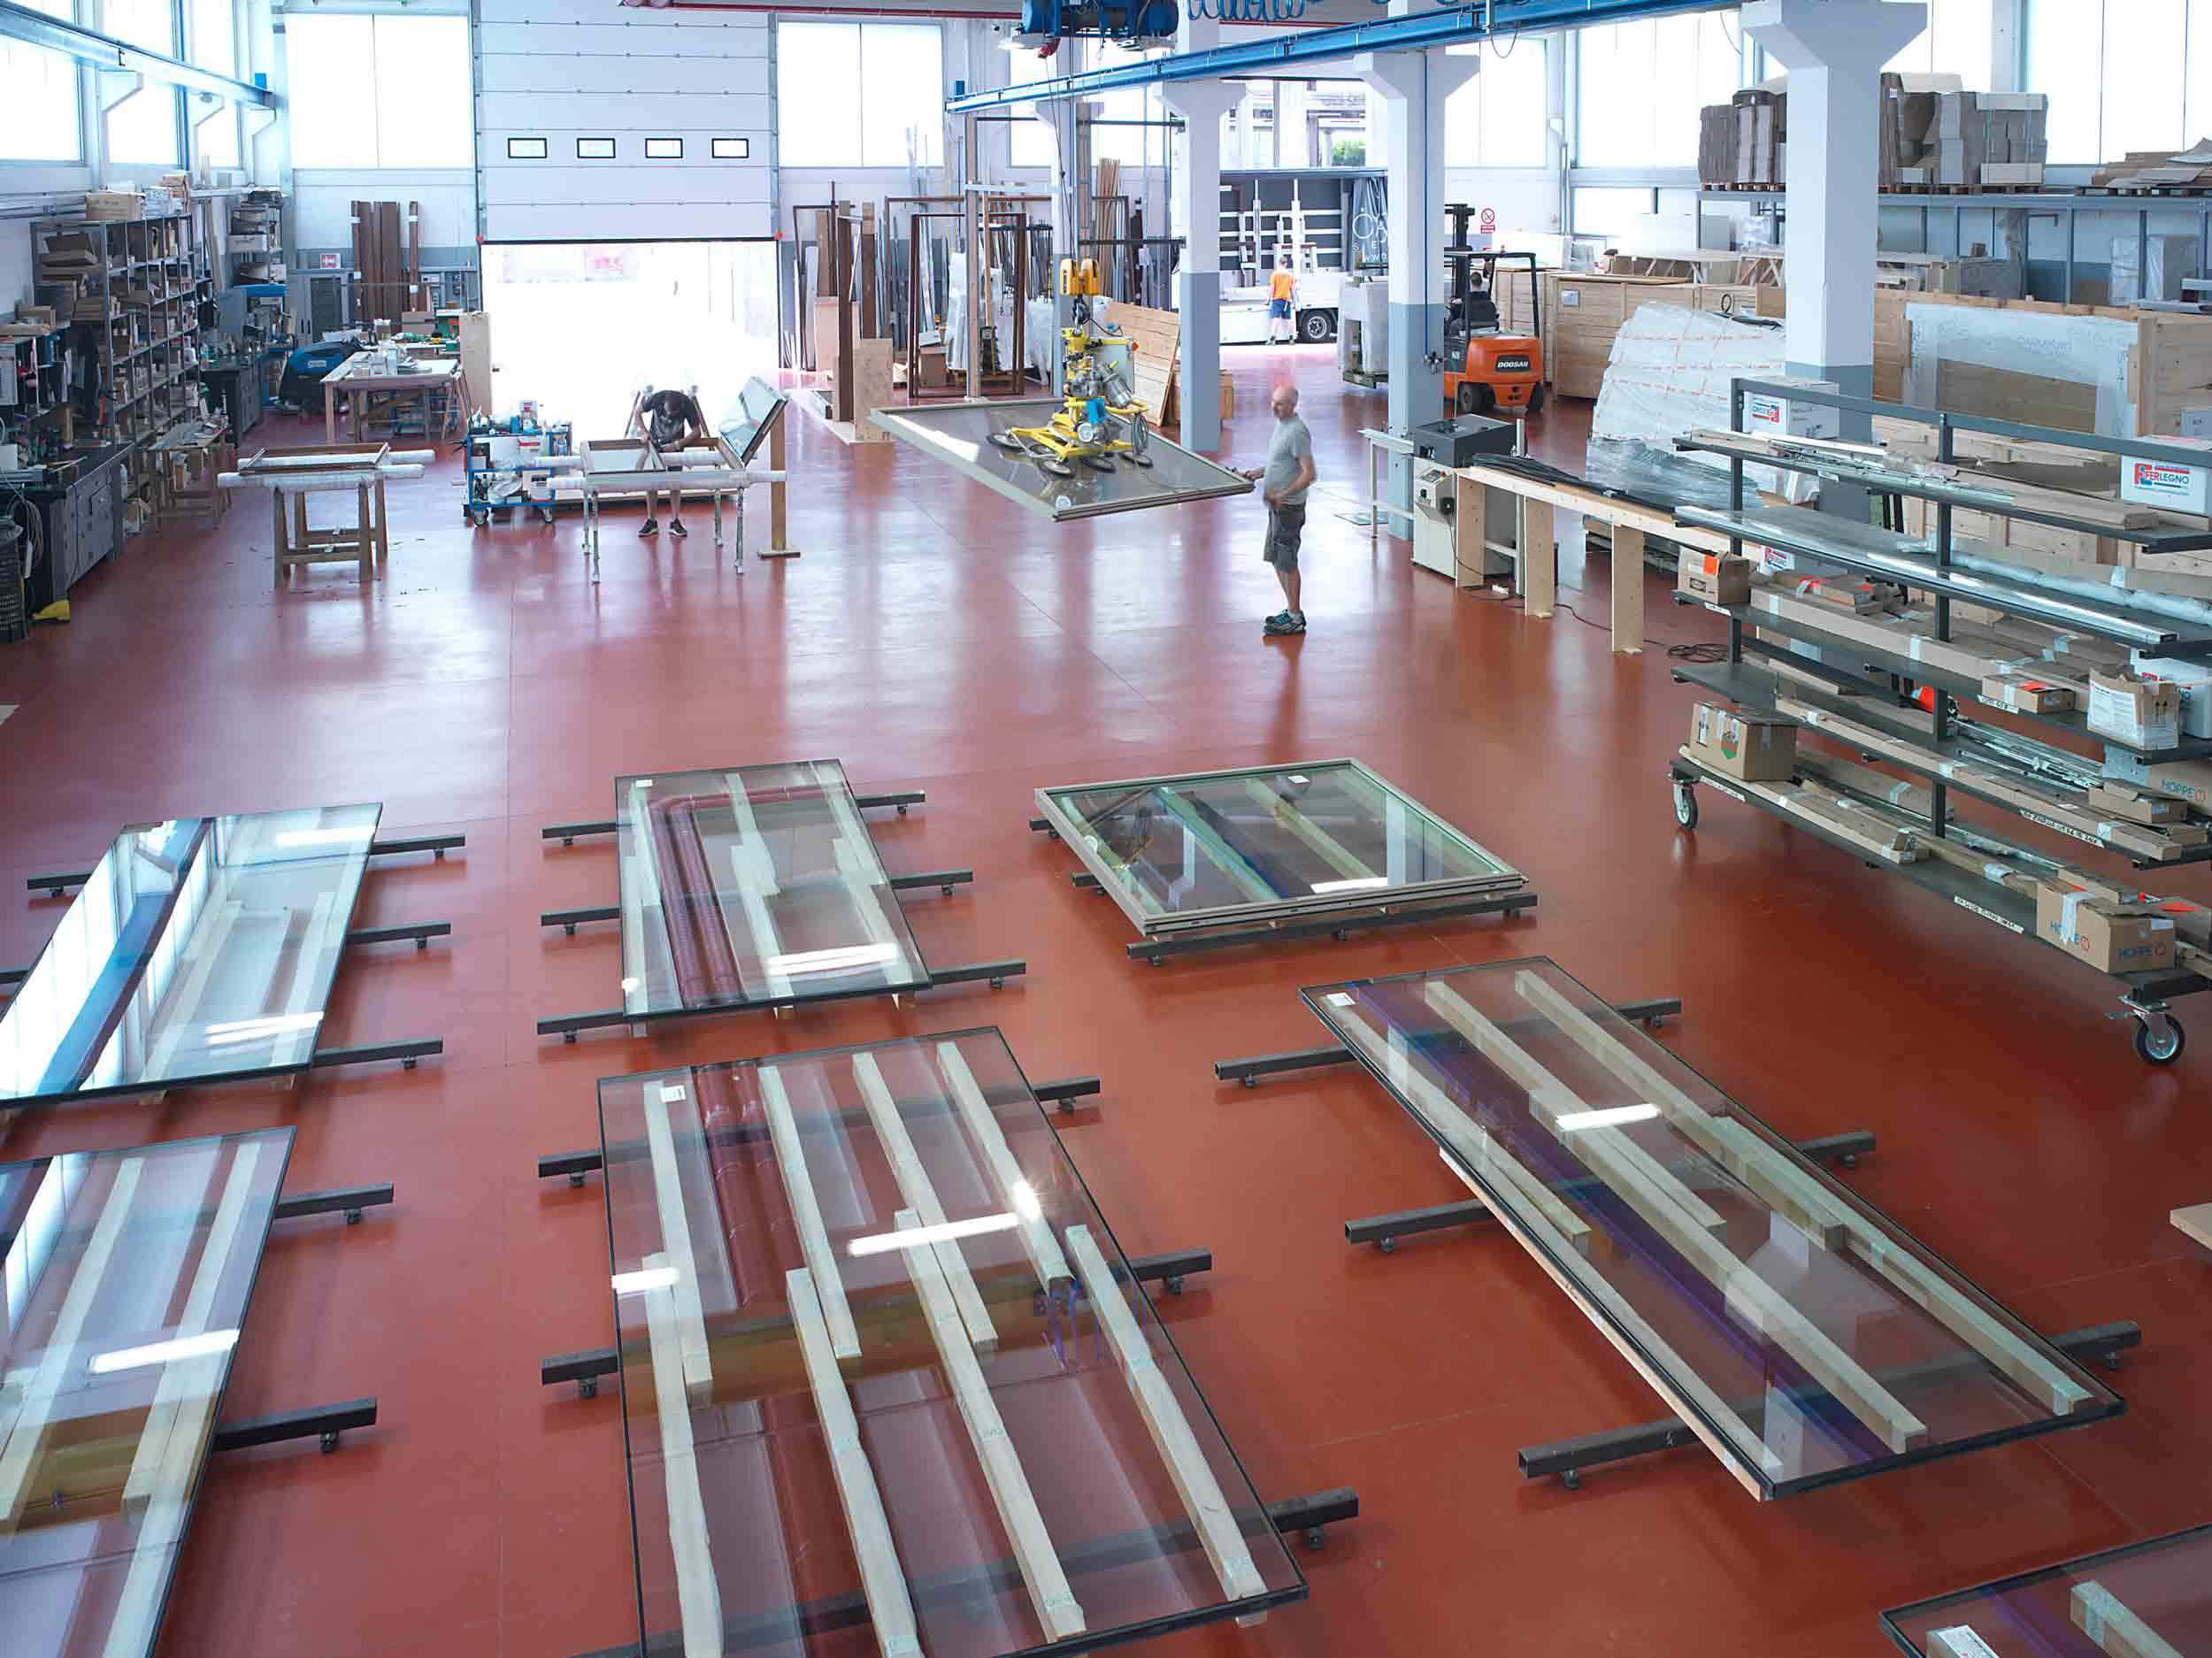 General view of the warehouse with the various stages of product assembly